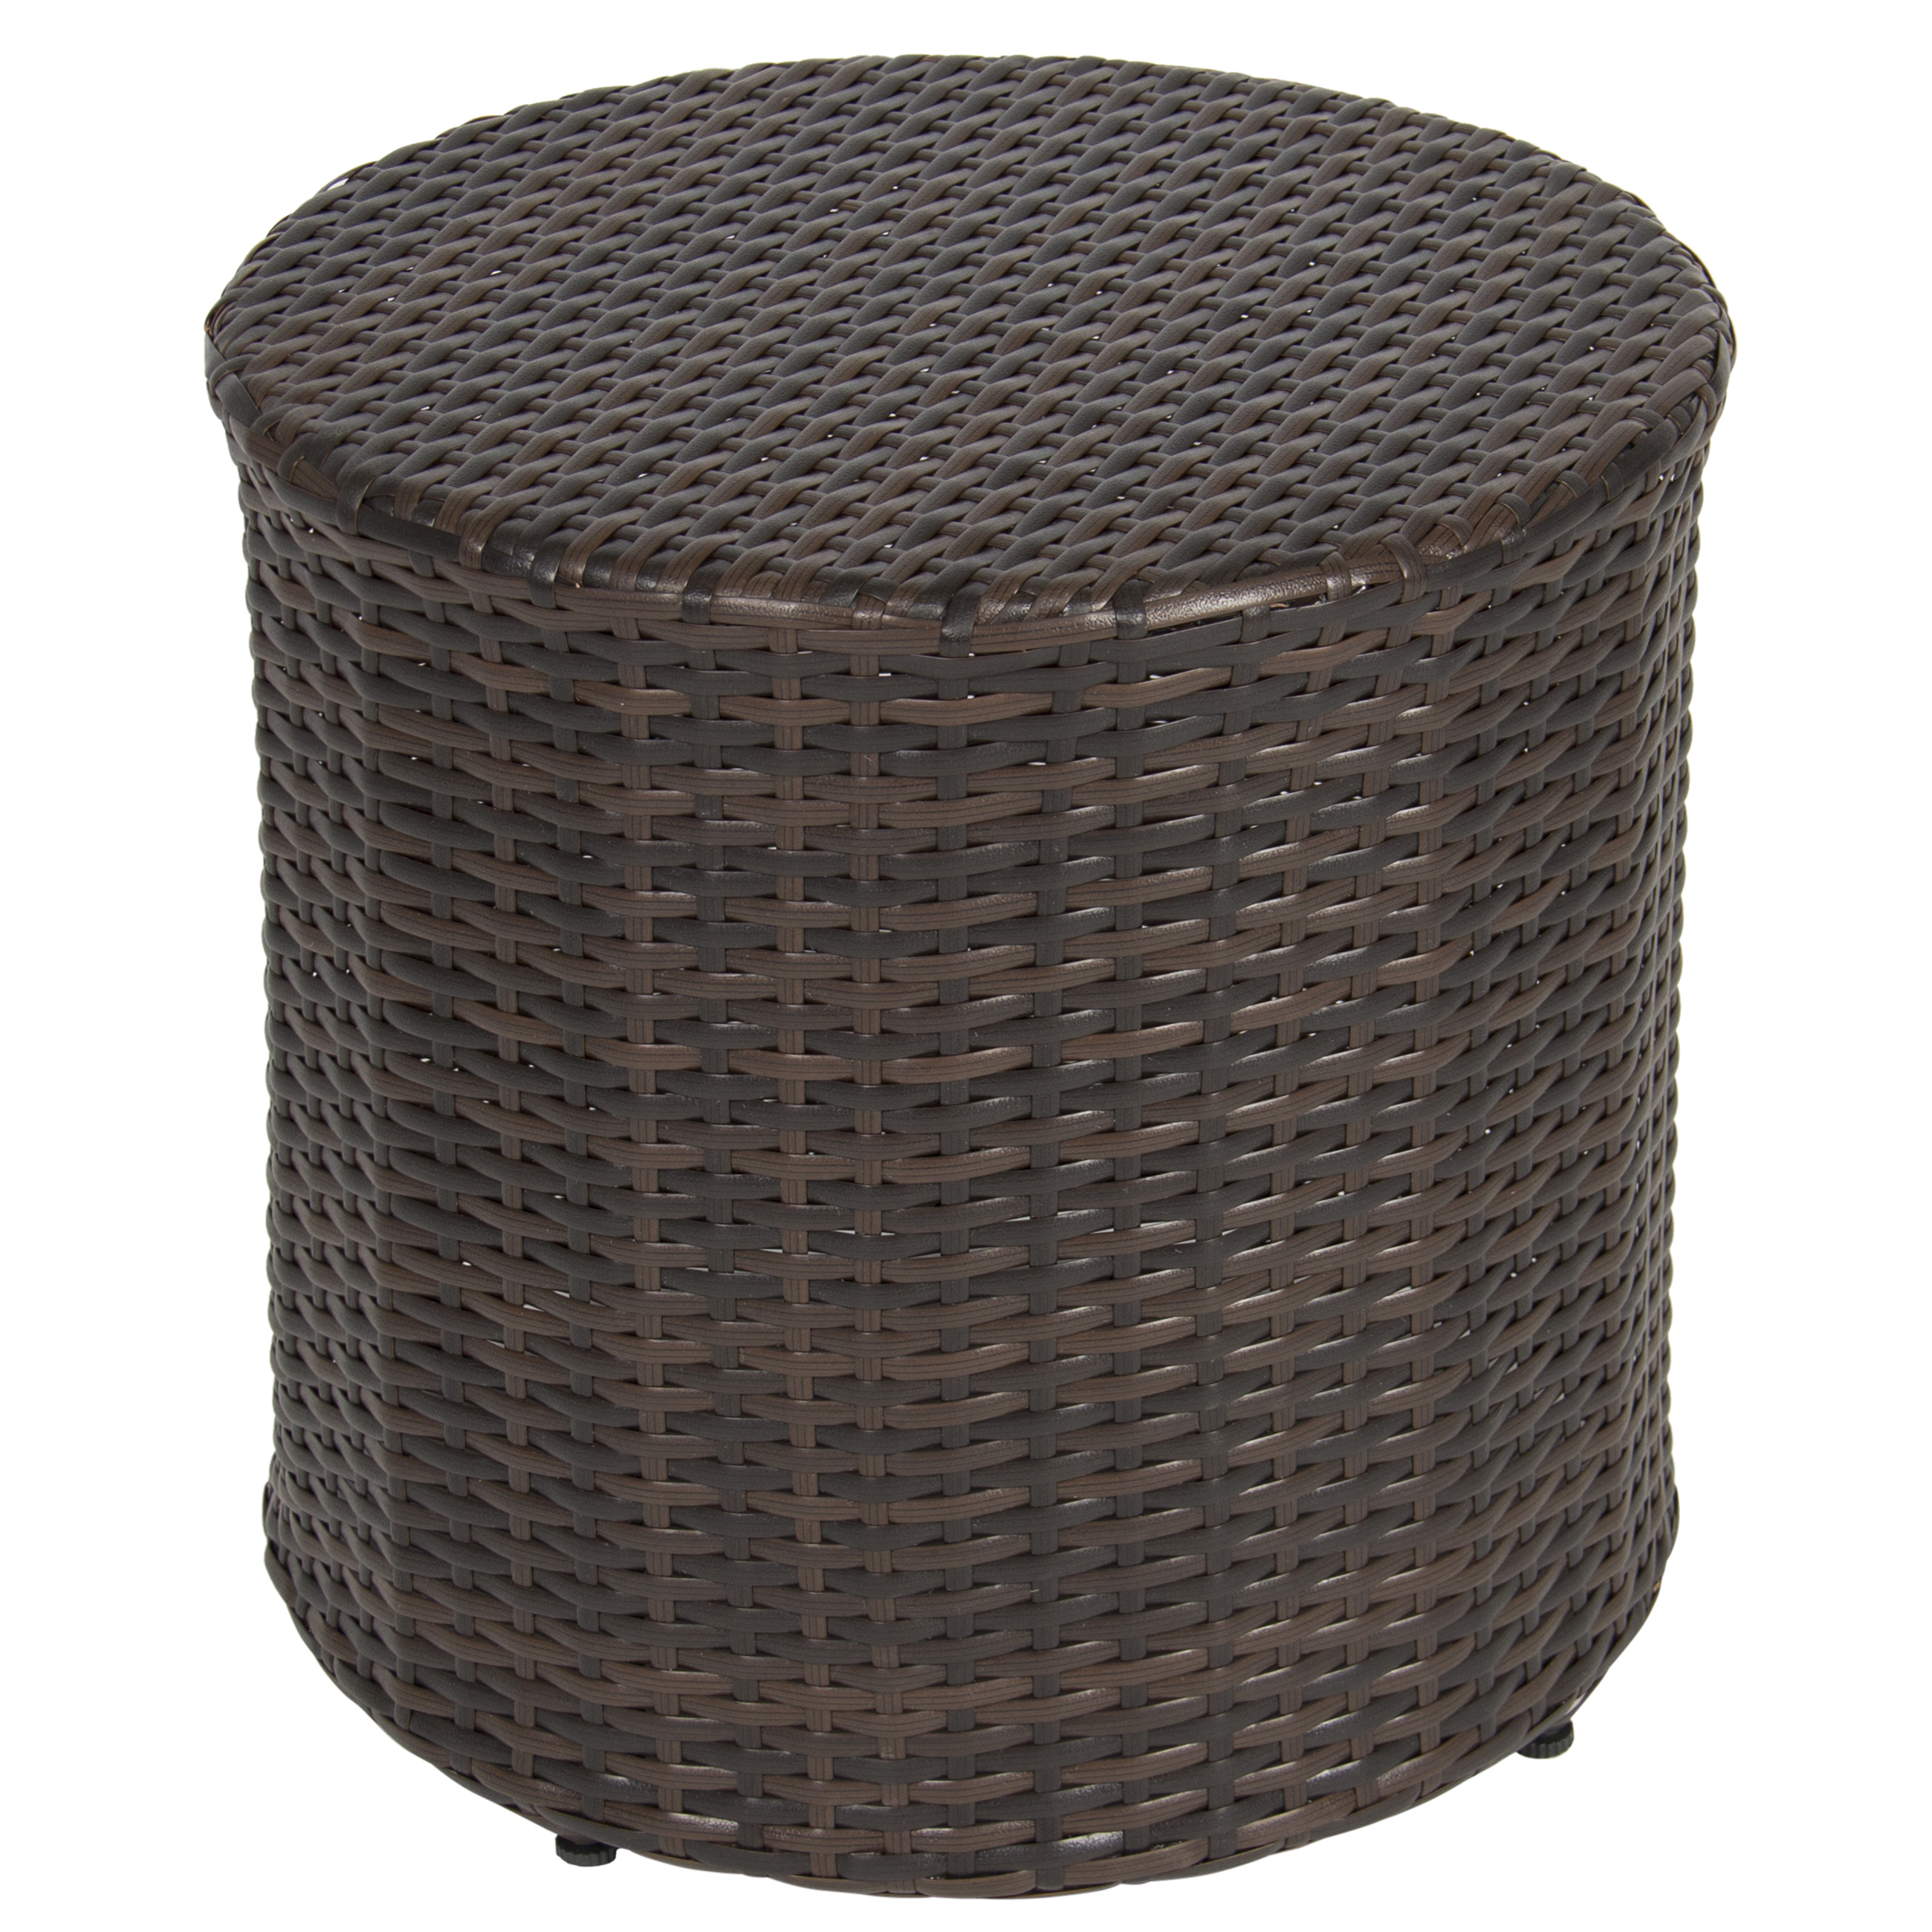 Outdoor Patio Furniture With Storage.Best Choice Products Outdoor Round Wicker Rattan Barrel Side Table Patio Furniture W Storage Steel Frame For Garden Backyard Porch Pool Brown